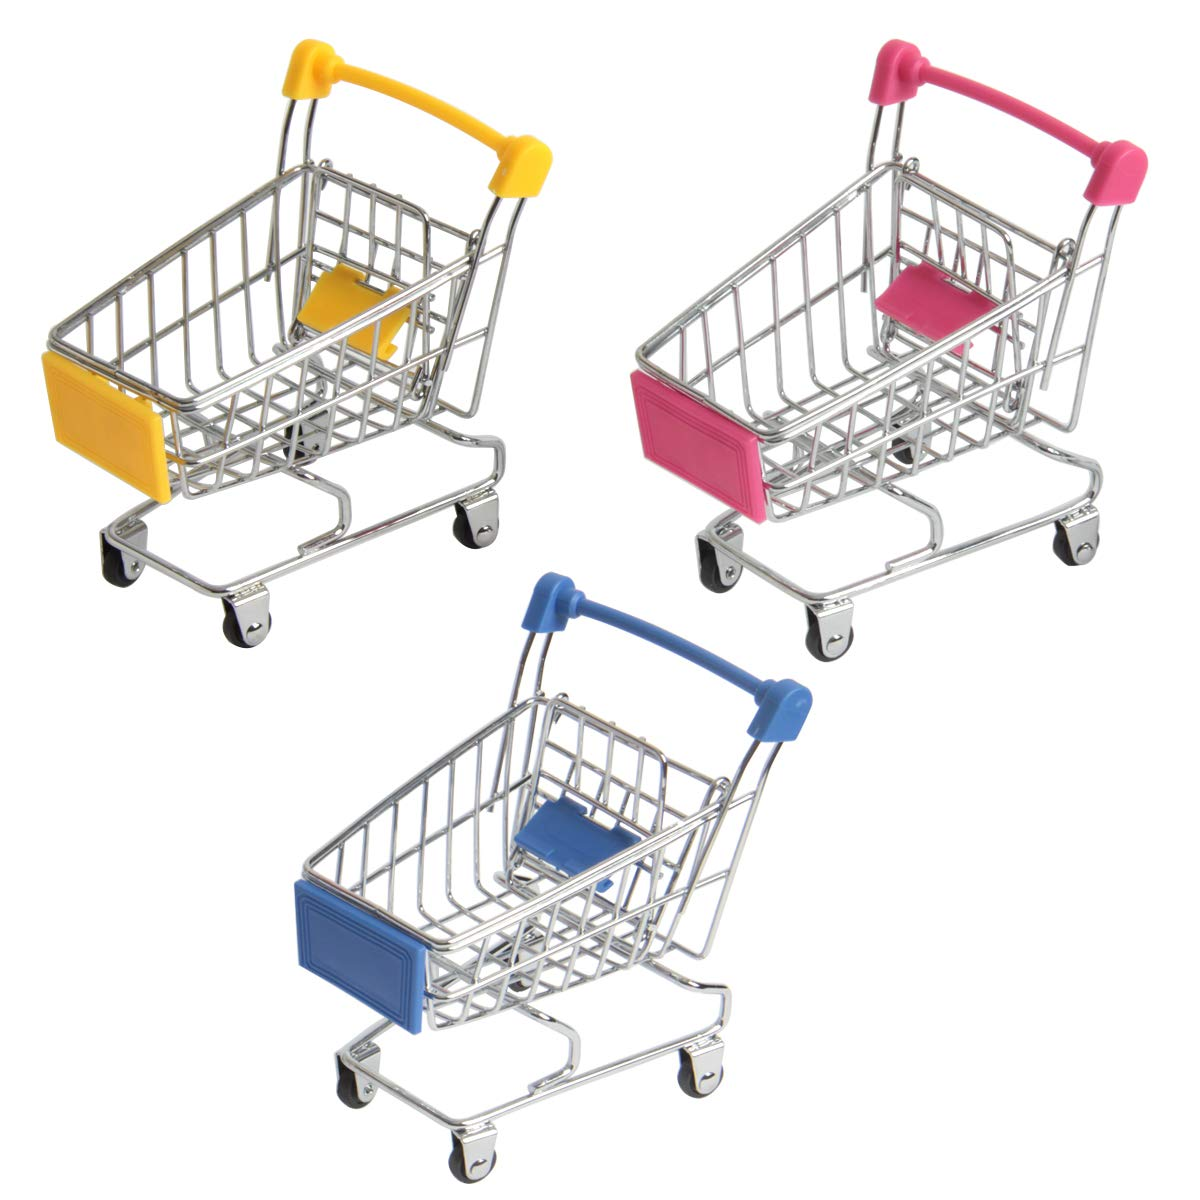 HAPY SHOP Mini Supermarket Handcart,3 Packs Mini Shopping Cart Shopping Utility Cart Mode Storage Toy Desk Organizers-Pink,Yellow,Blue